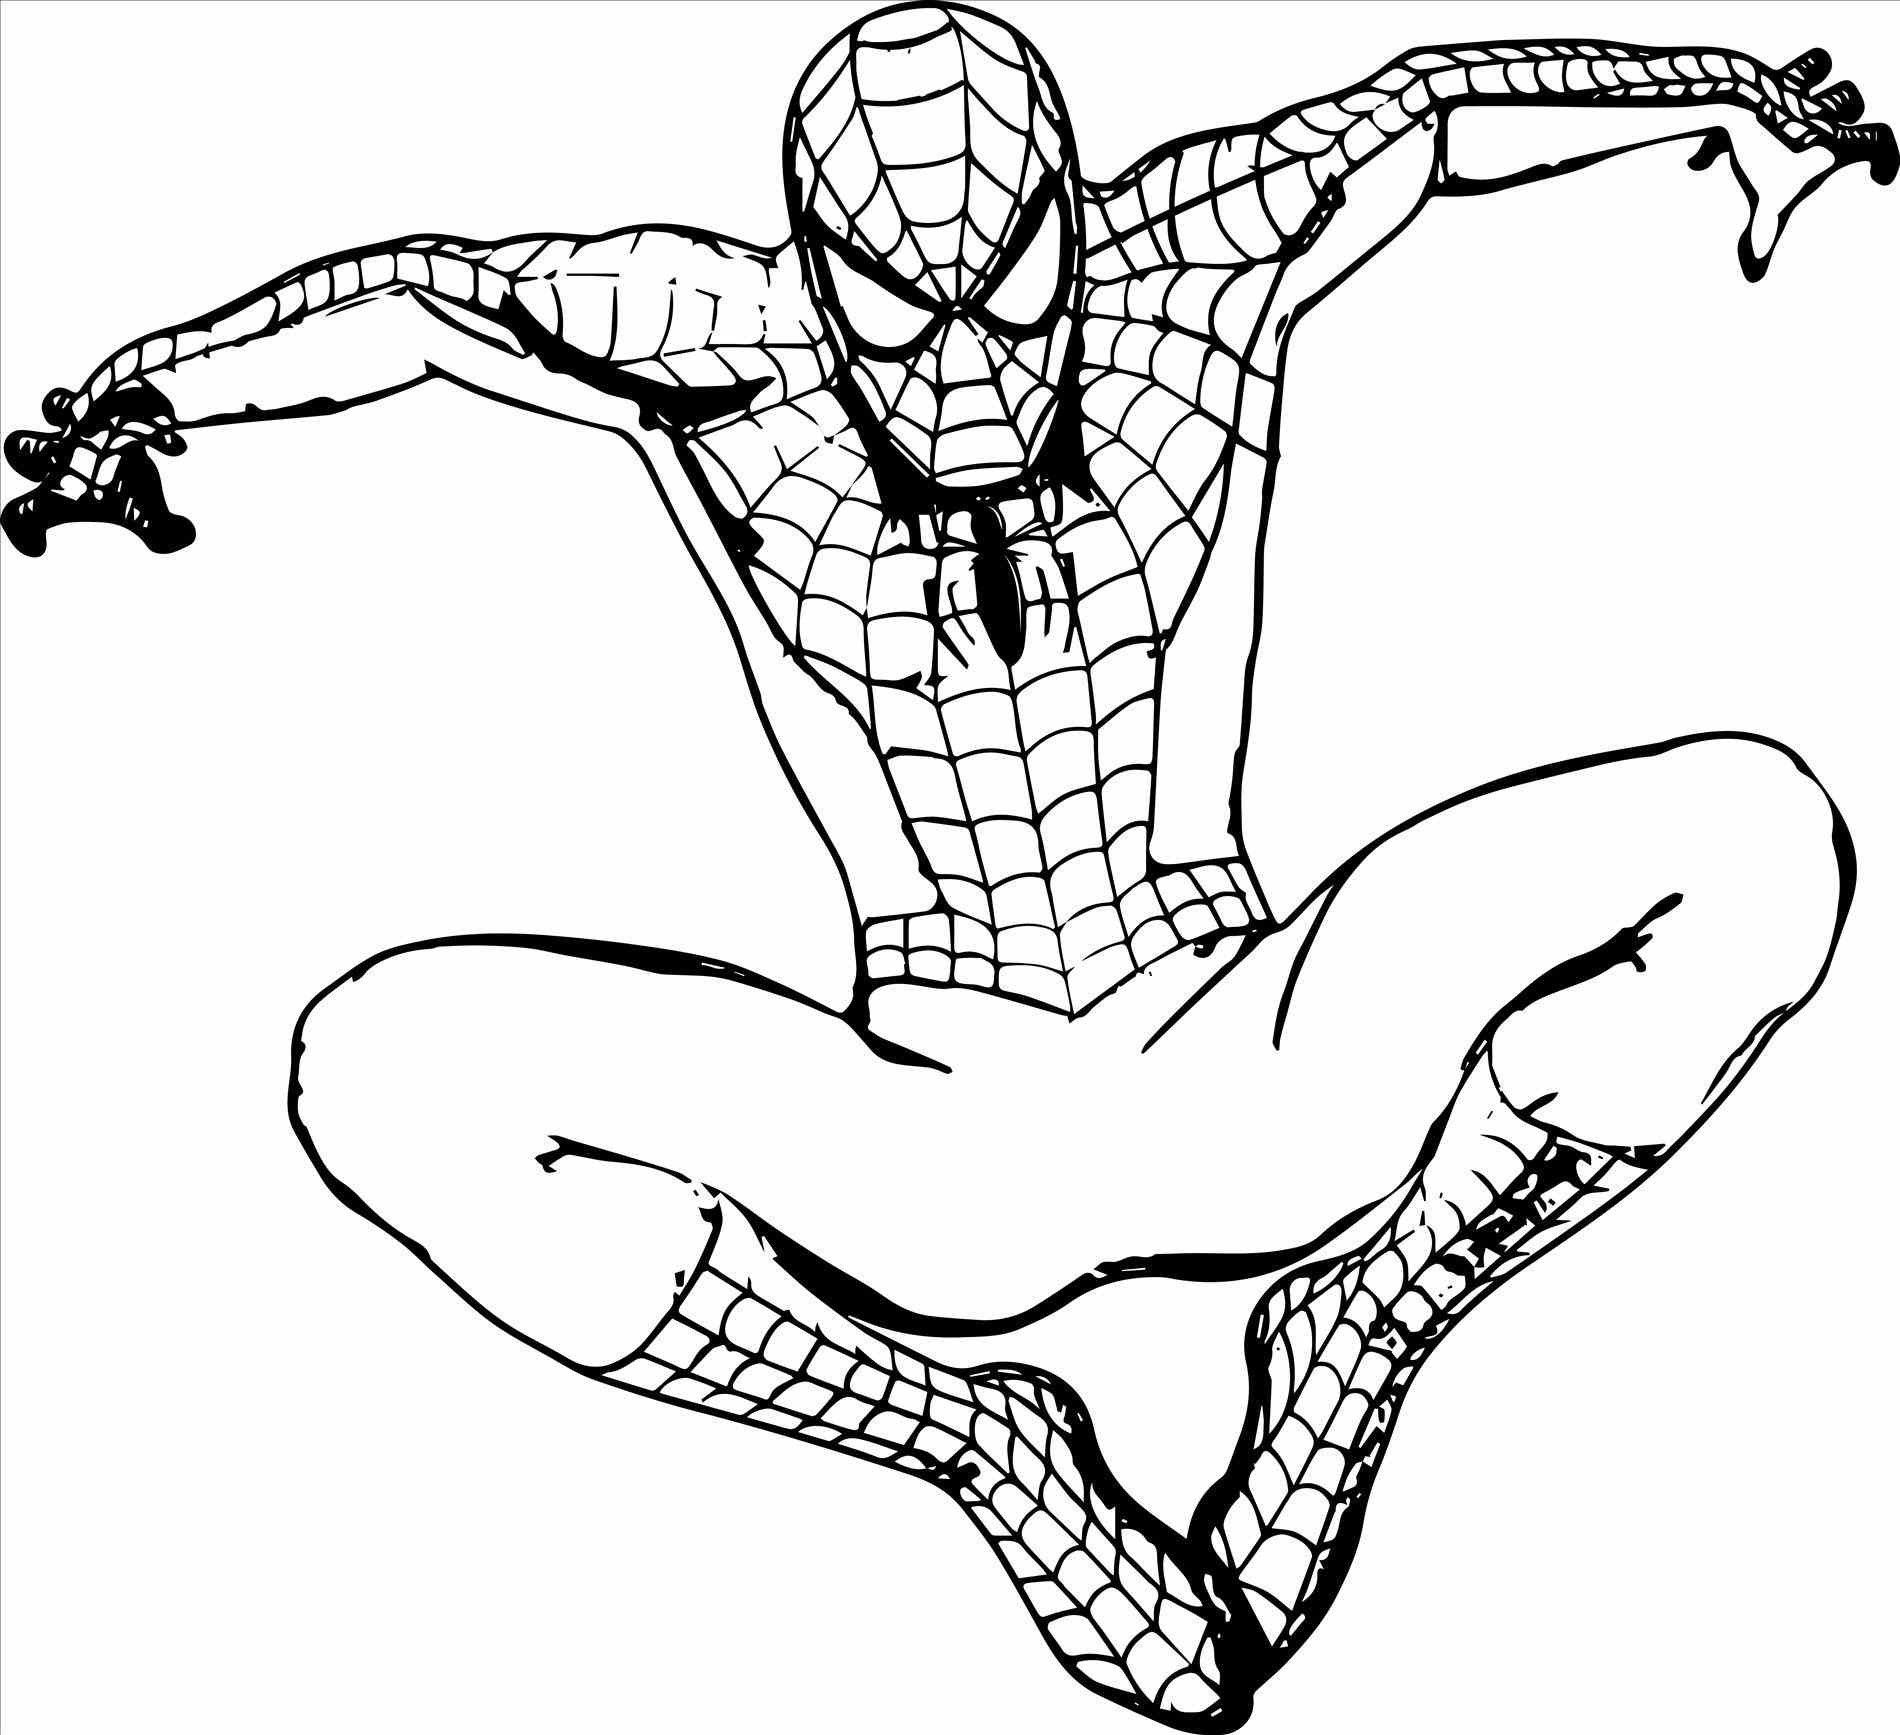 10 Super Hero Coloring Books Pdf Superhero Coloring Letters Superhero Coloring Pages Free Su Superhero Coloring Pages Superhero Coloring Spiderman Coloring